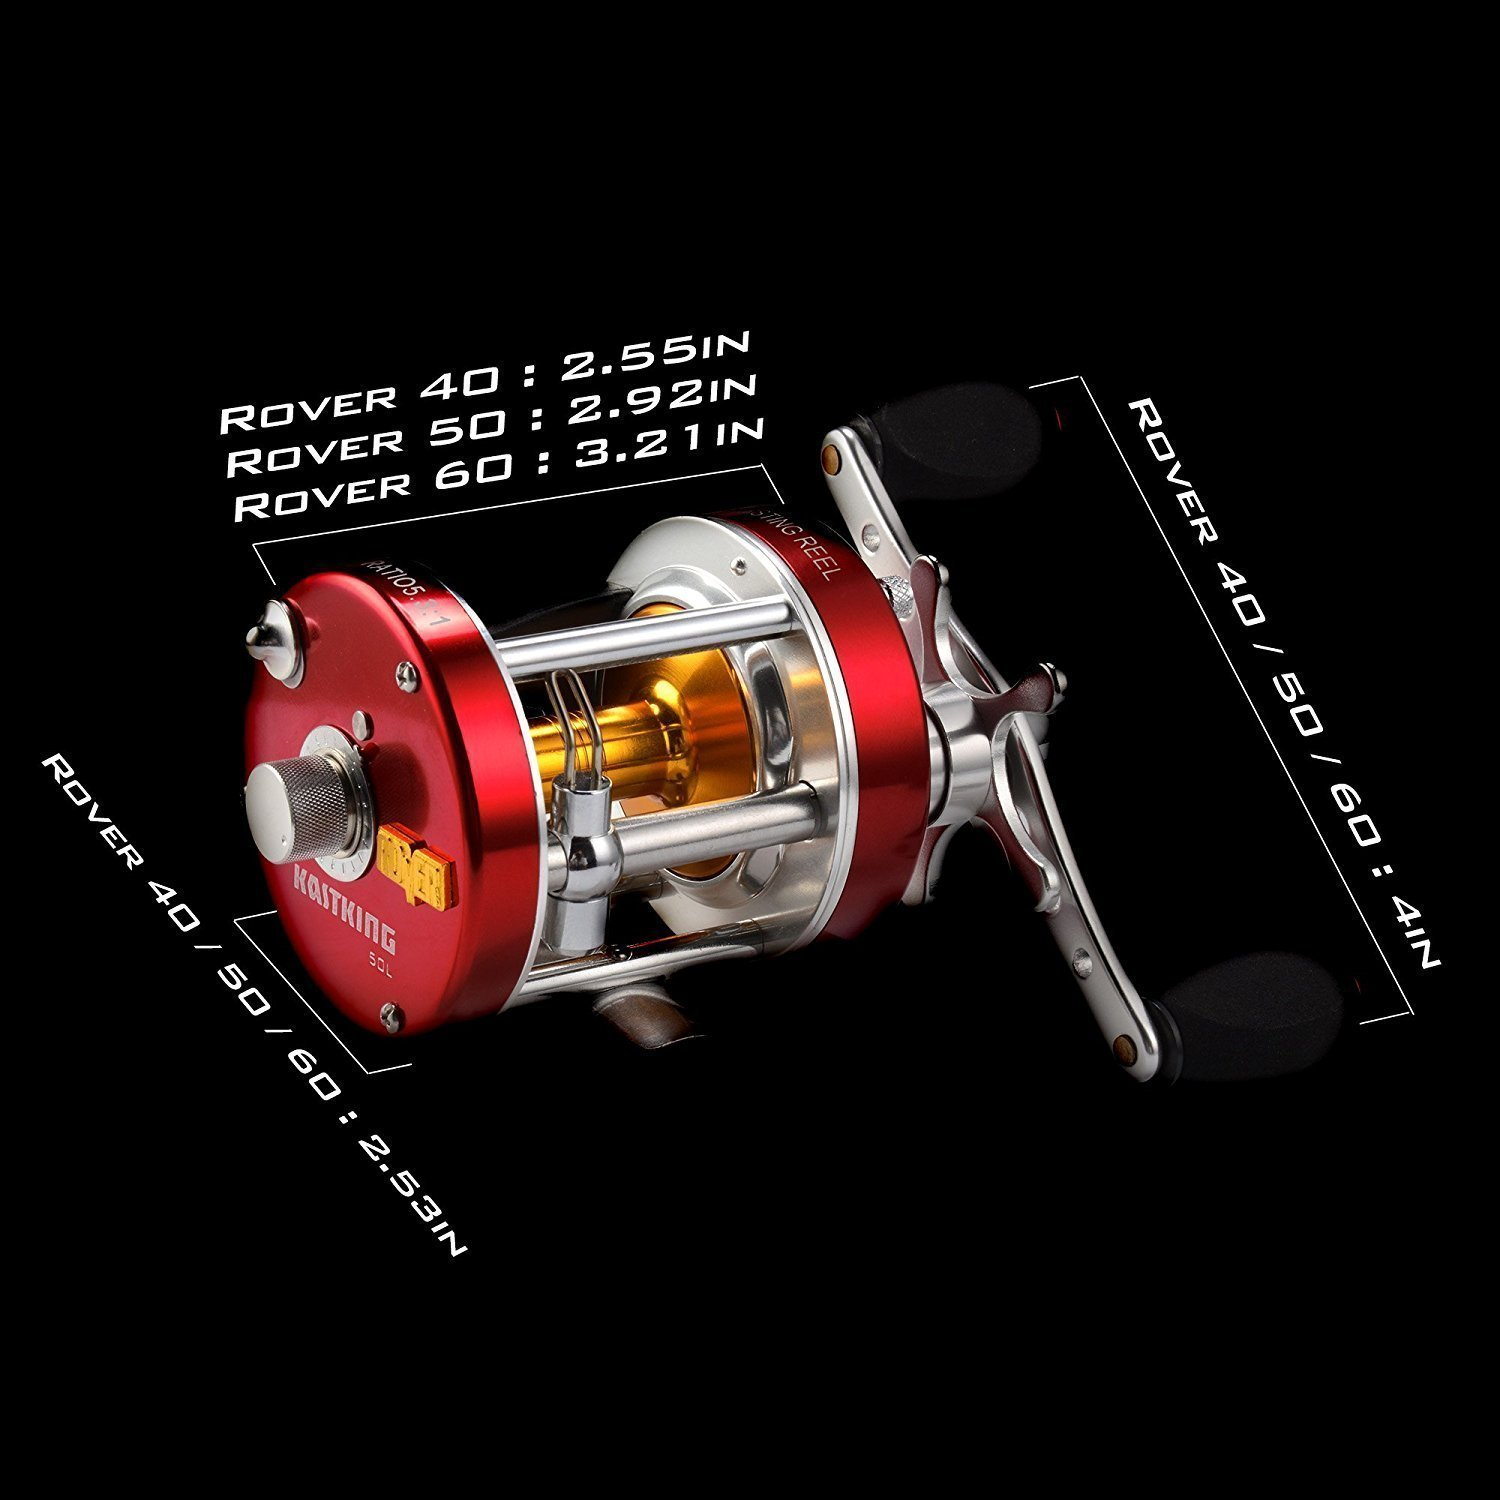 KastKing Rover Round Baitcasting Reel - No. 1 Rated Conventional Reel - Carbon Fiber Star Drag - Reinforced Metal Body by KastKing (Image #9)